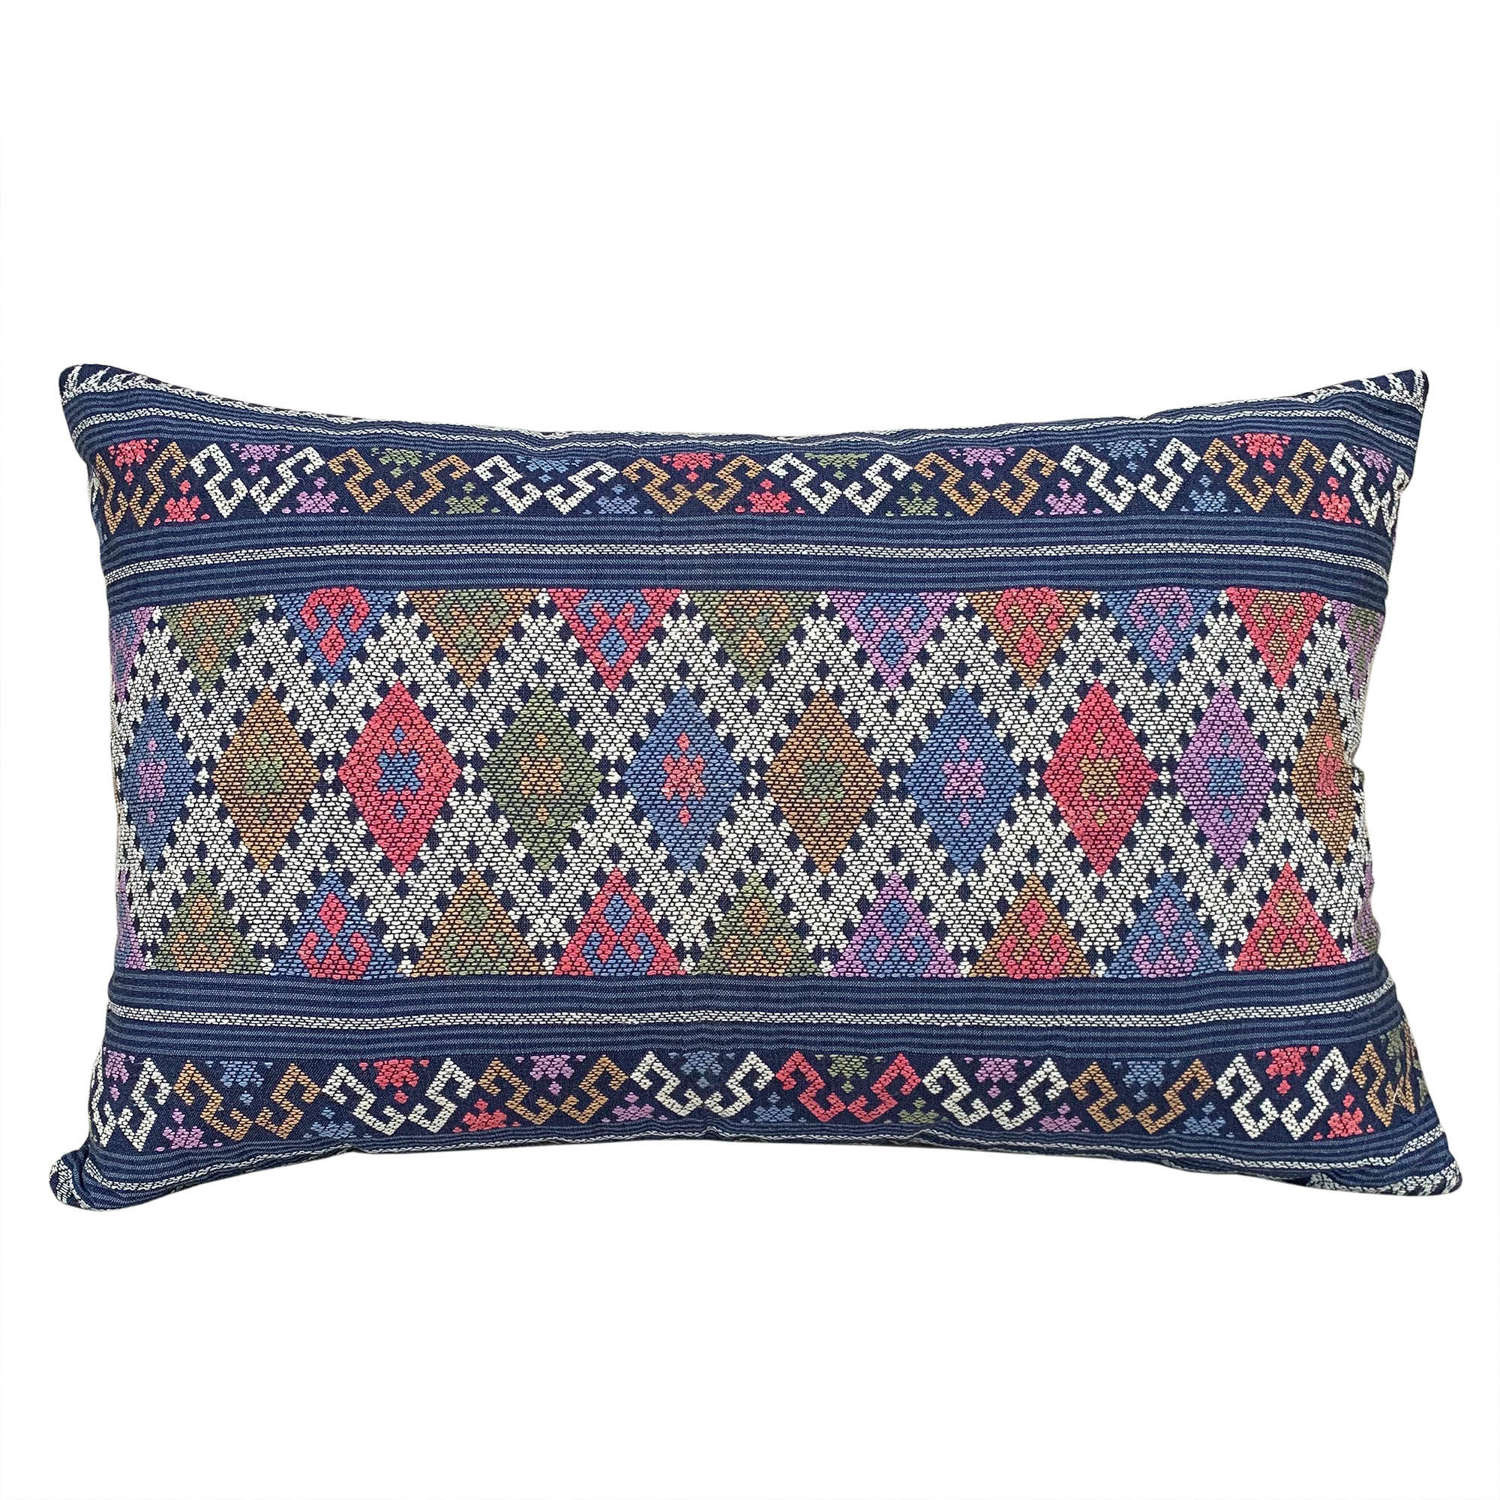 Laos handwoven cushions